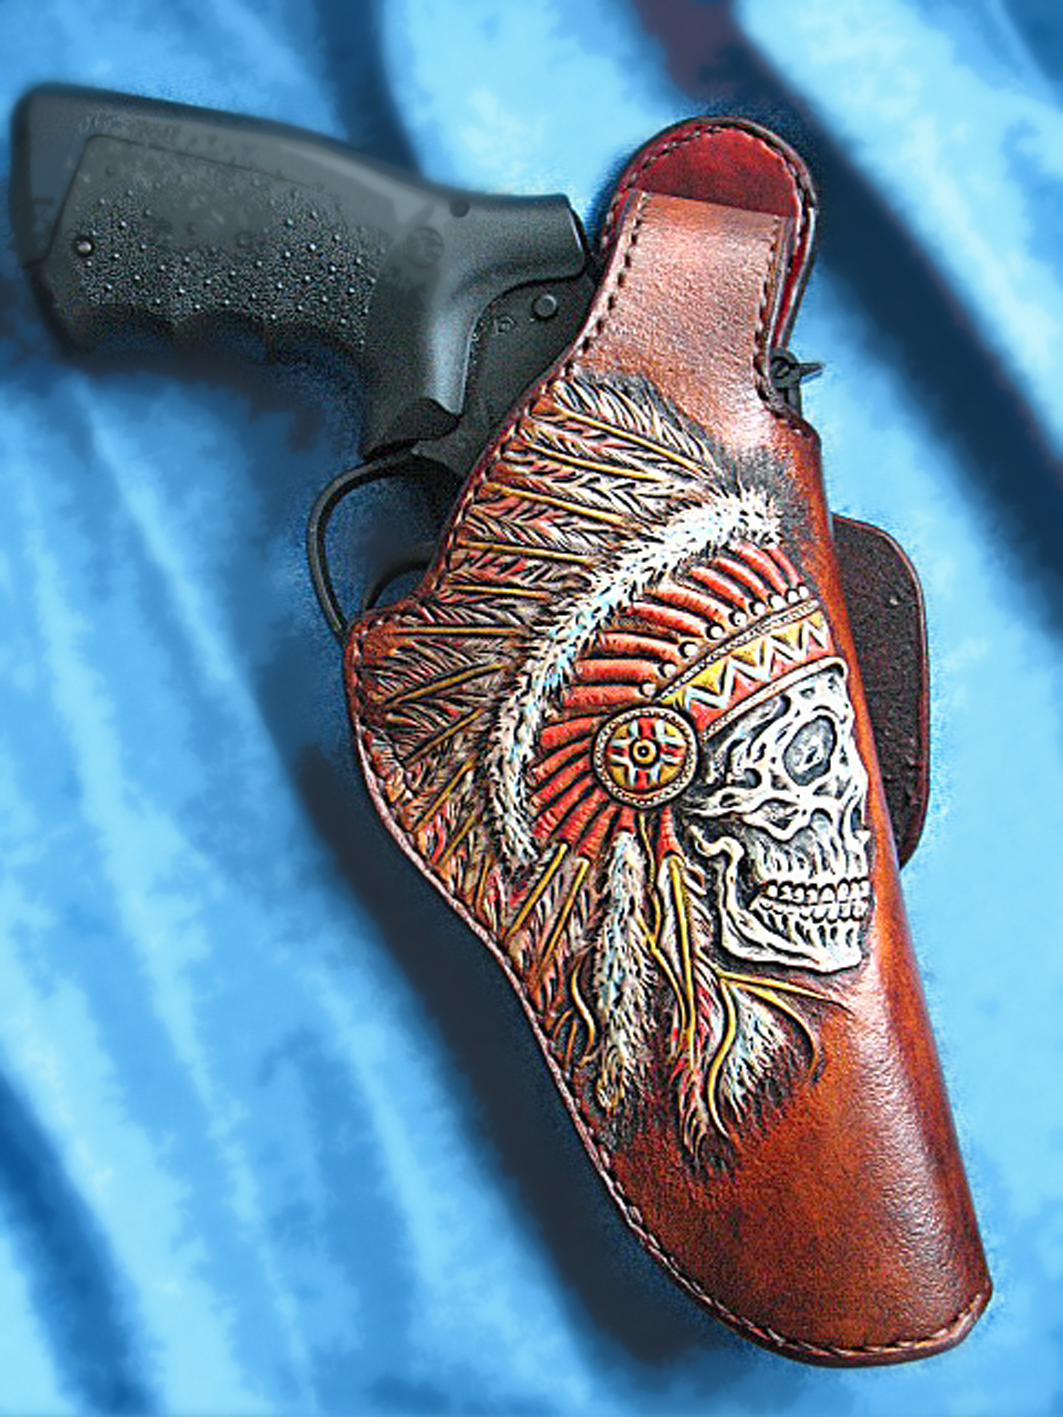 Buy A Handmade Tooled Leather Holster S Amp W Thumb Break Indian Skull Made To Order From Serge S